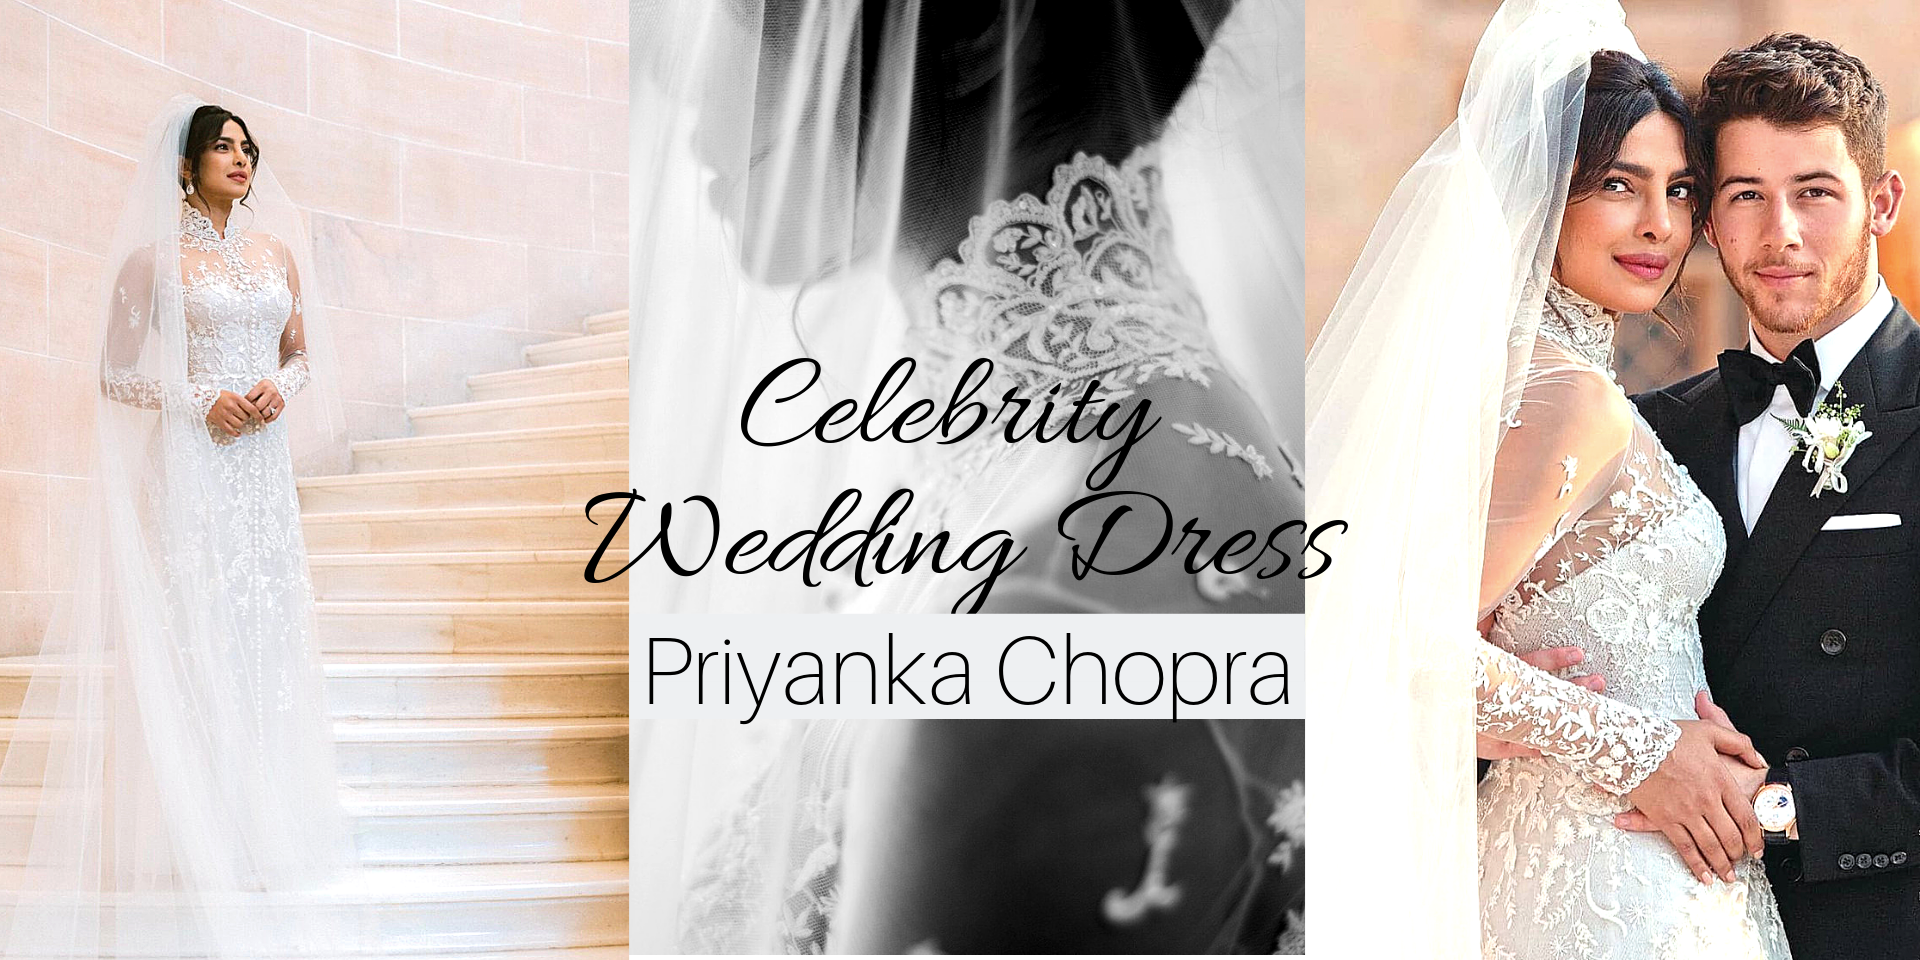 Three photos of Priyanka Chopra in her wedding dress: first, standing on a staircase for a full shot of the gown; second, covered in her veil for a close-up; third, holding her husband Nick Jonas.